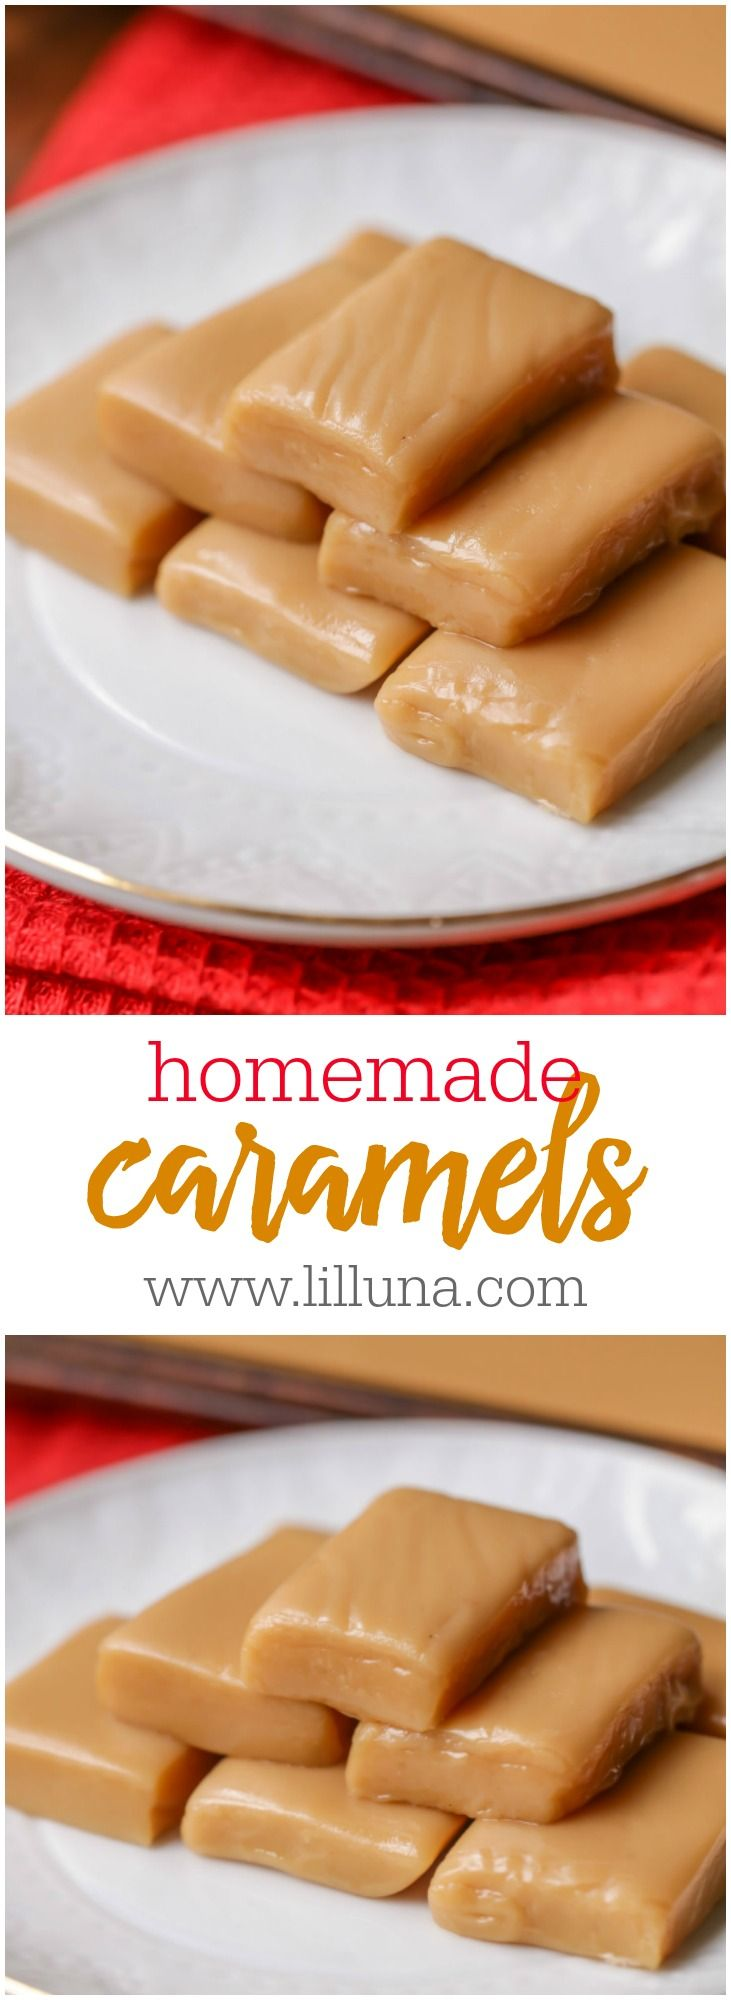 Soft, chewy and PERFECT Homemade Caramels - just wrap in wax paper and gift to friends and family. They're so easy to make!